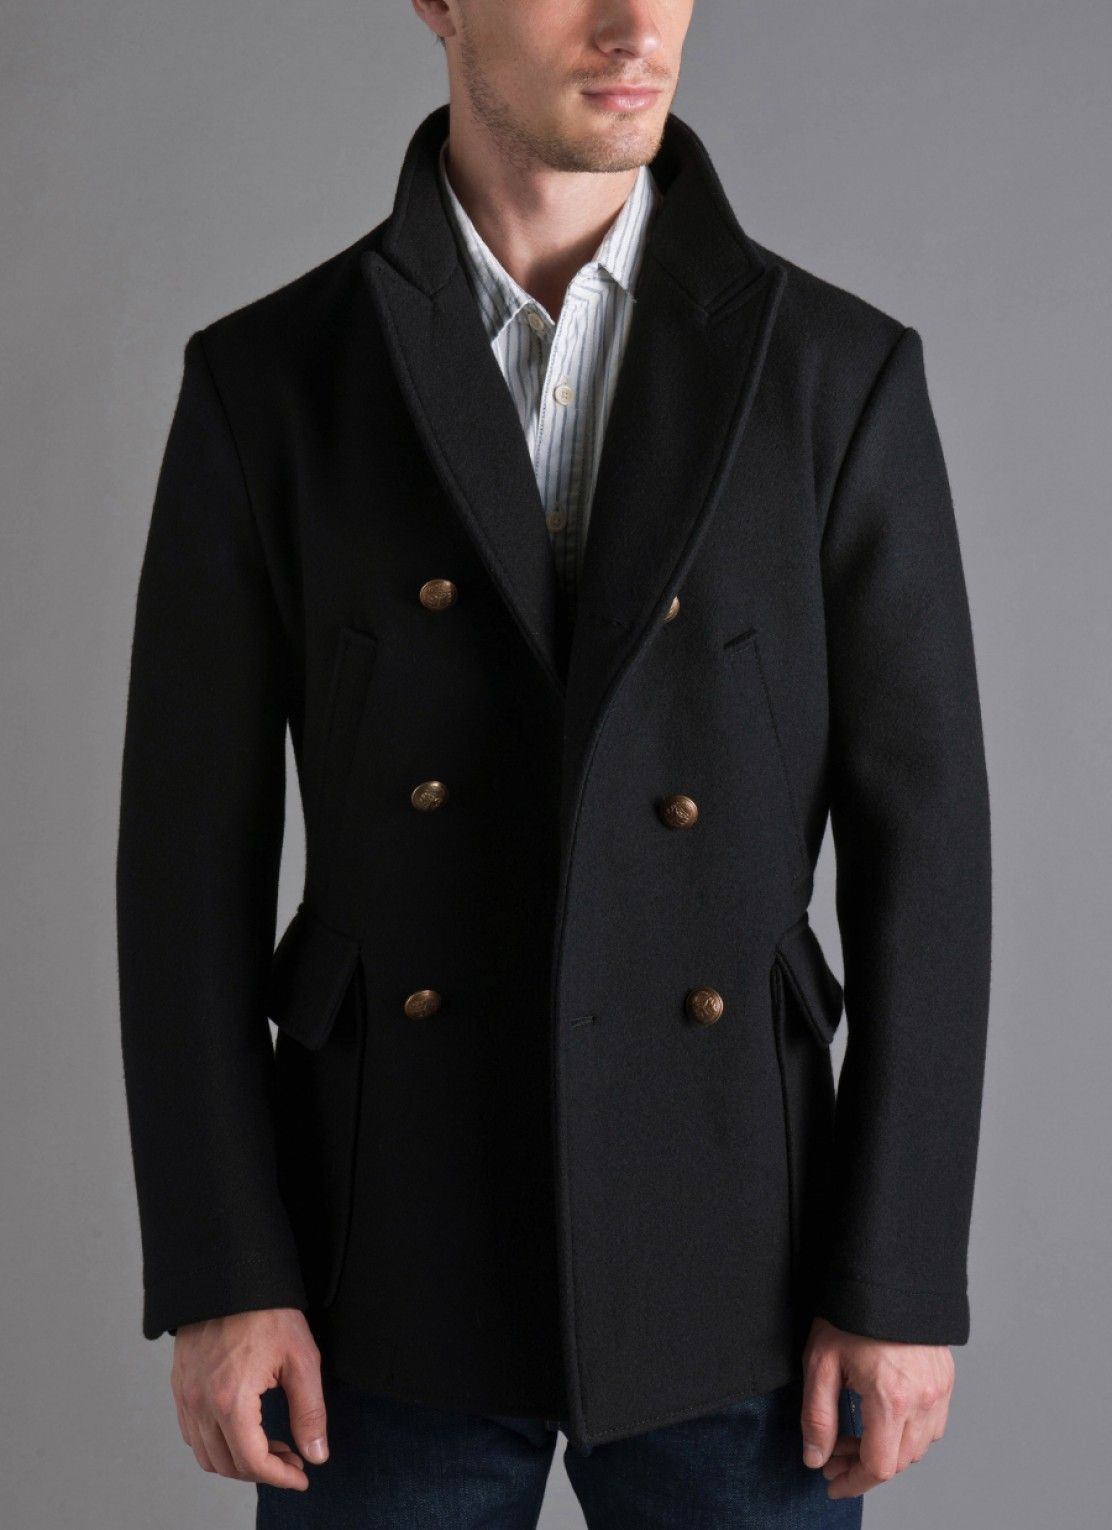 592757773fd James Bond s peacoat from Skyfall. Peak lapels. Functioning cuffs. Brass  buttons. Some serious leather stitching under the collar. Licence to kill.